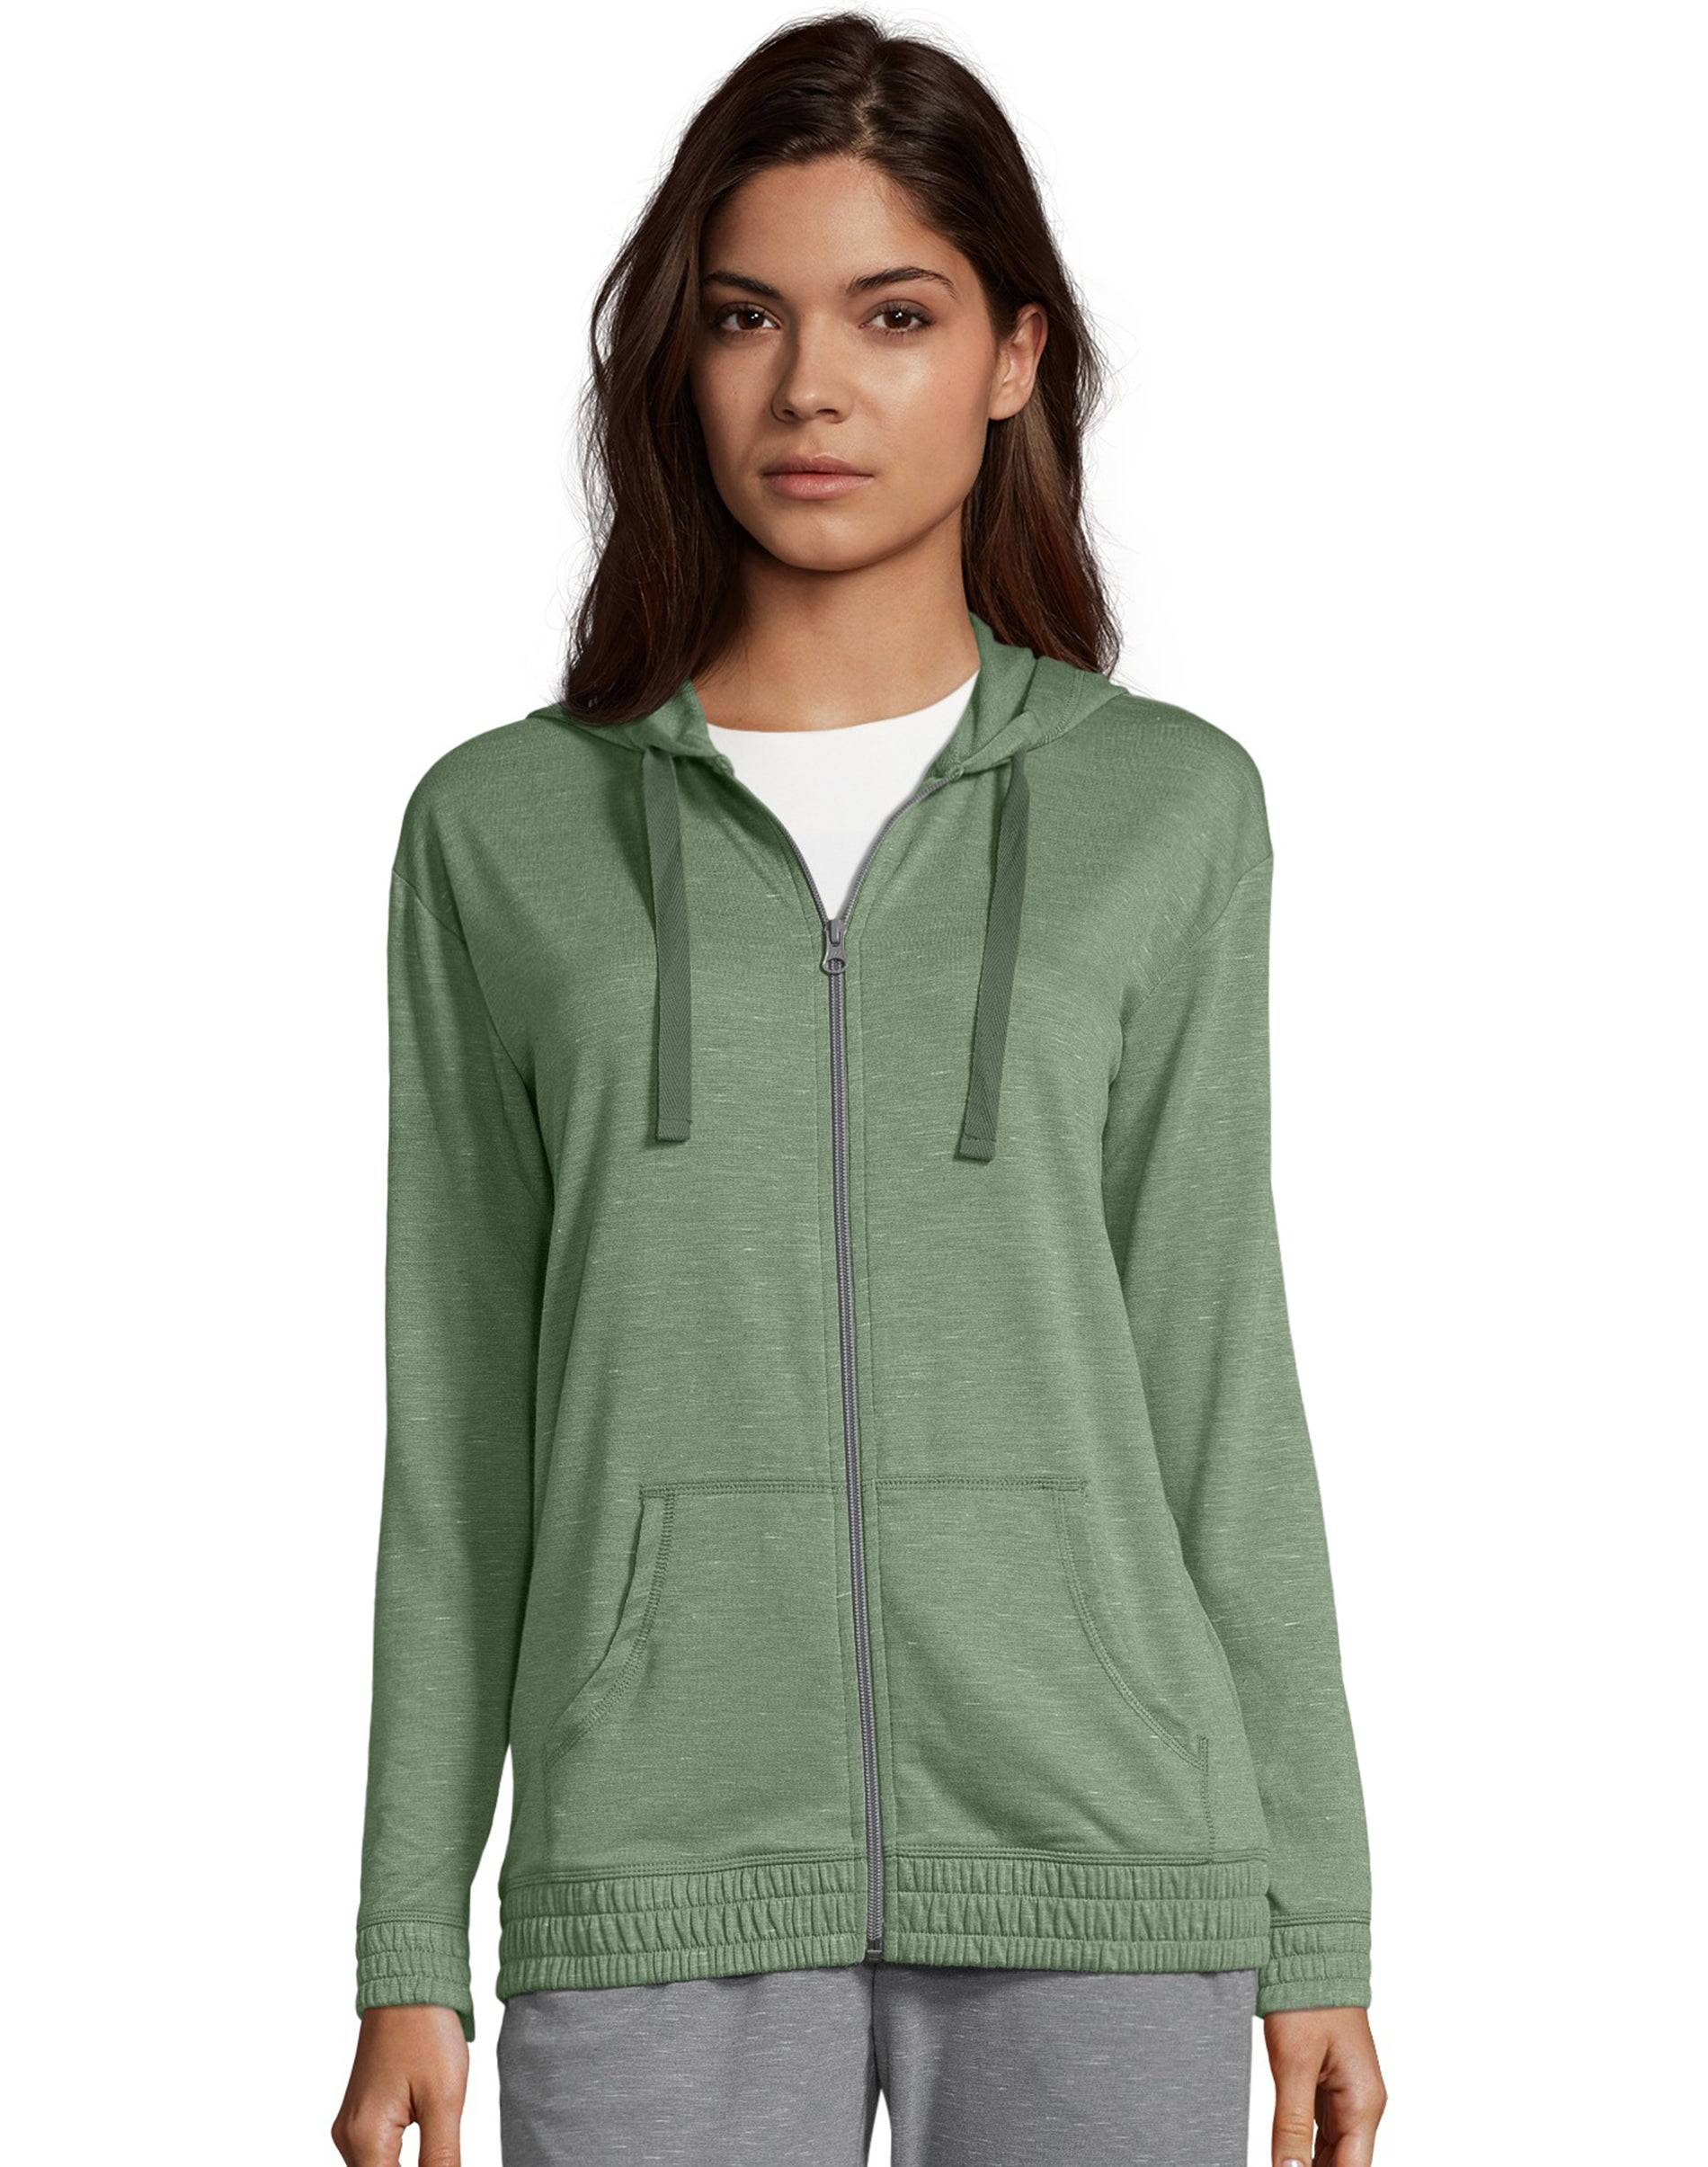 Hanes Women's French Terry Full Zip Hoodie Nature Green Heather 2XL